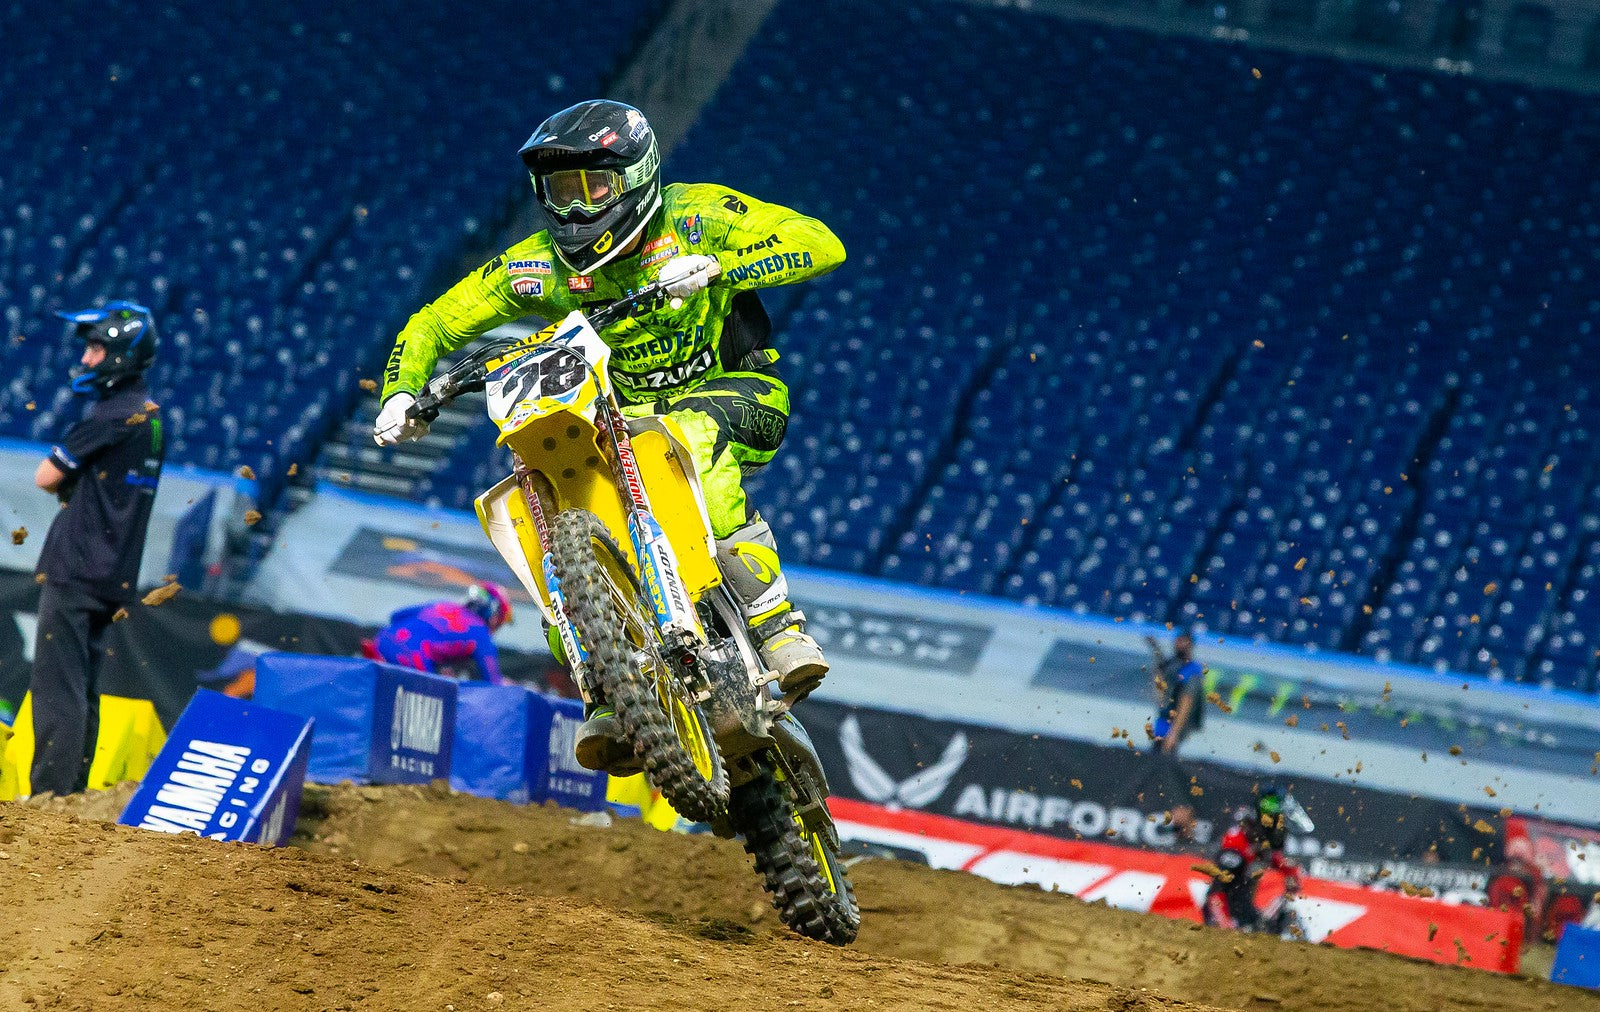 Brandon Hartranft (#28) continues to grow in his rookie 450 season.